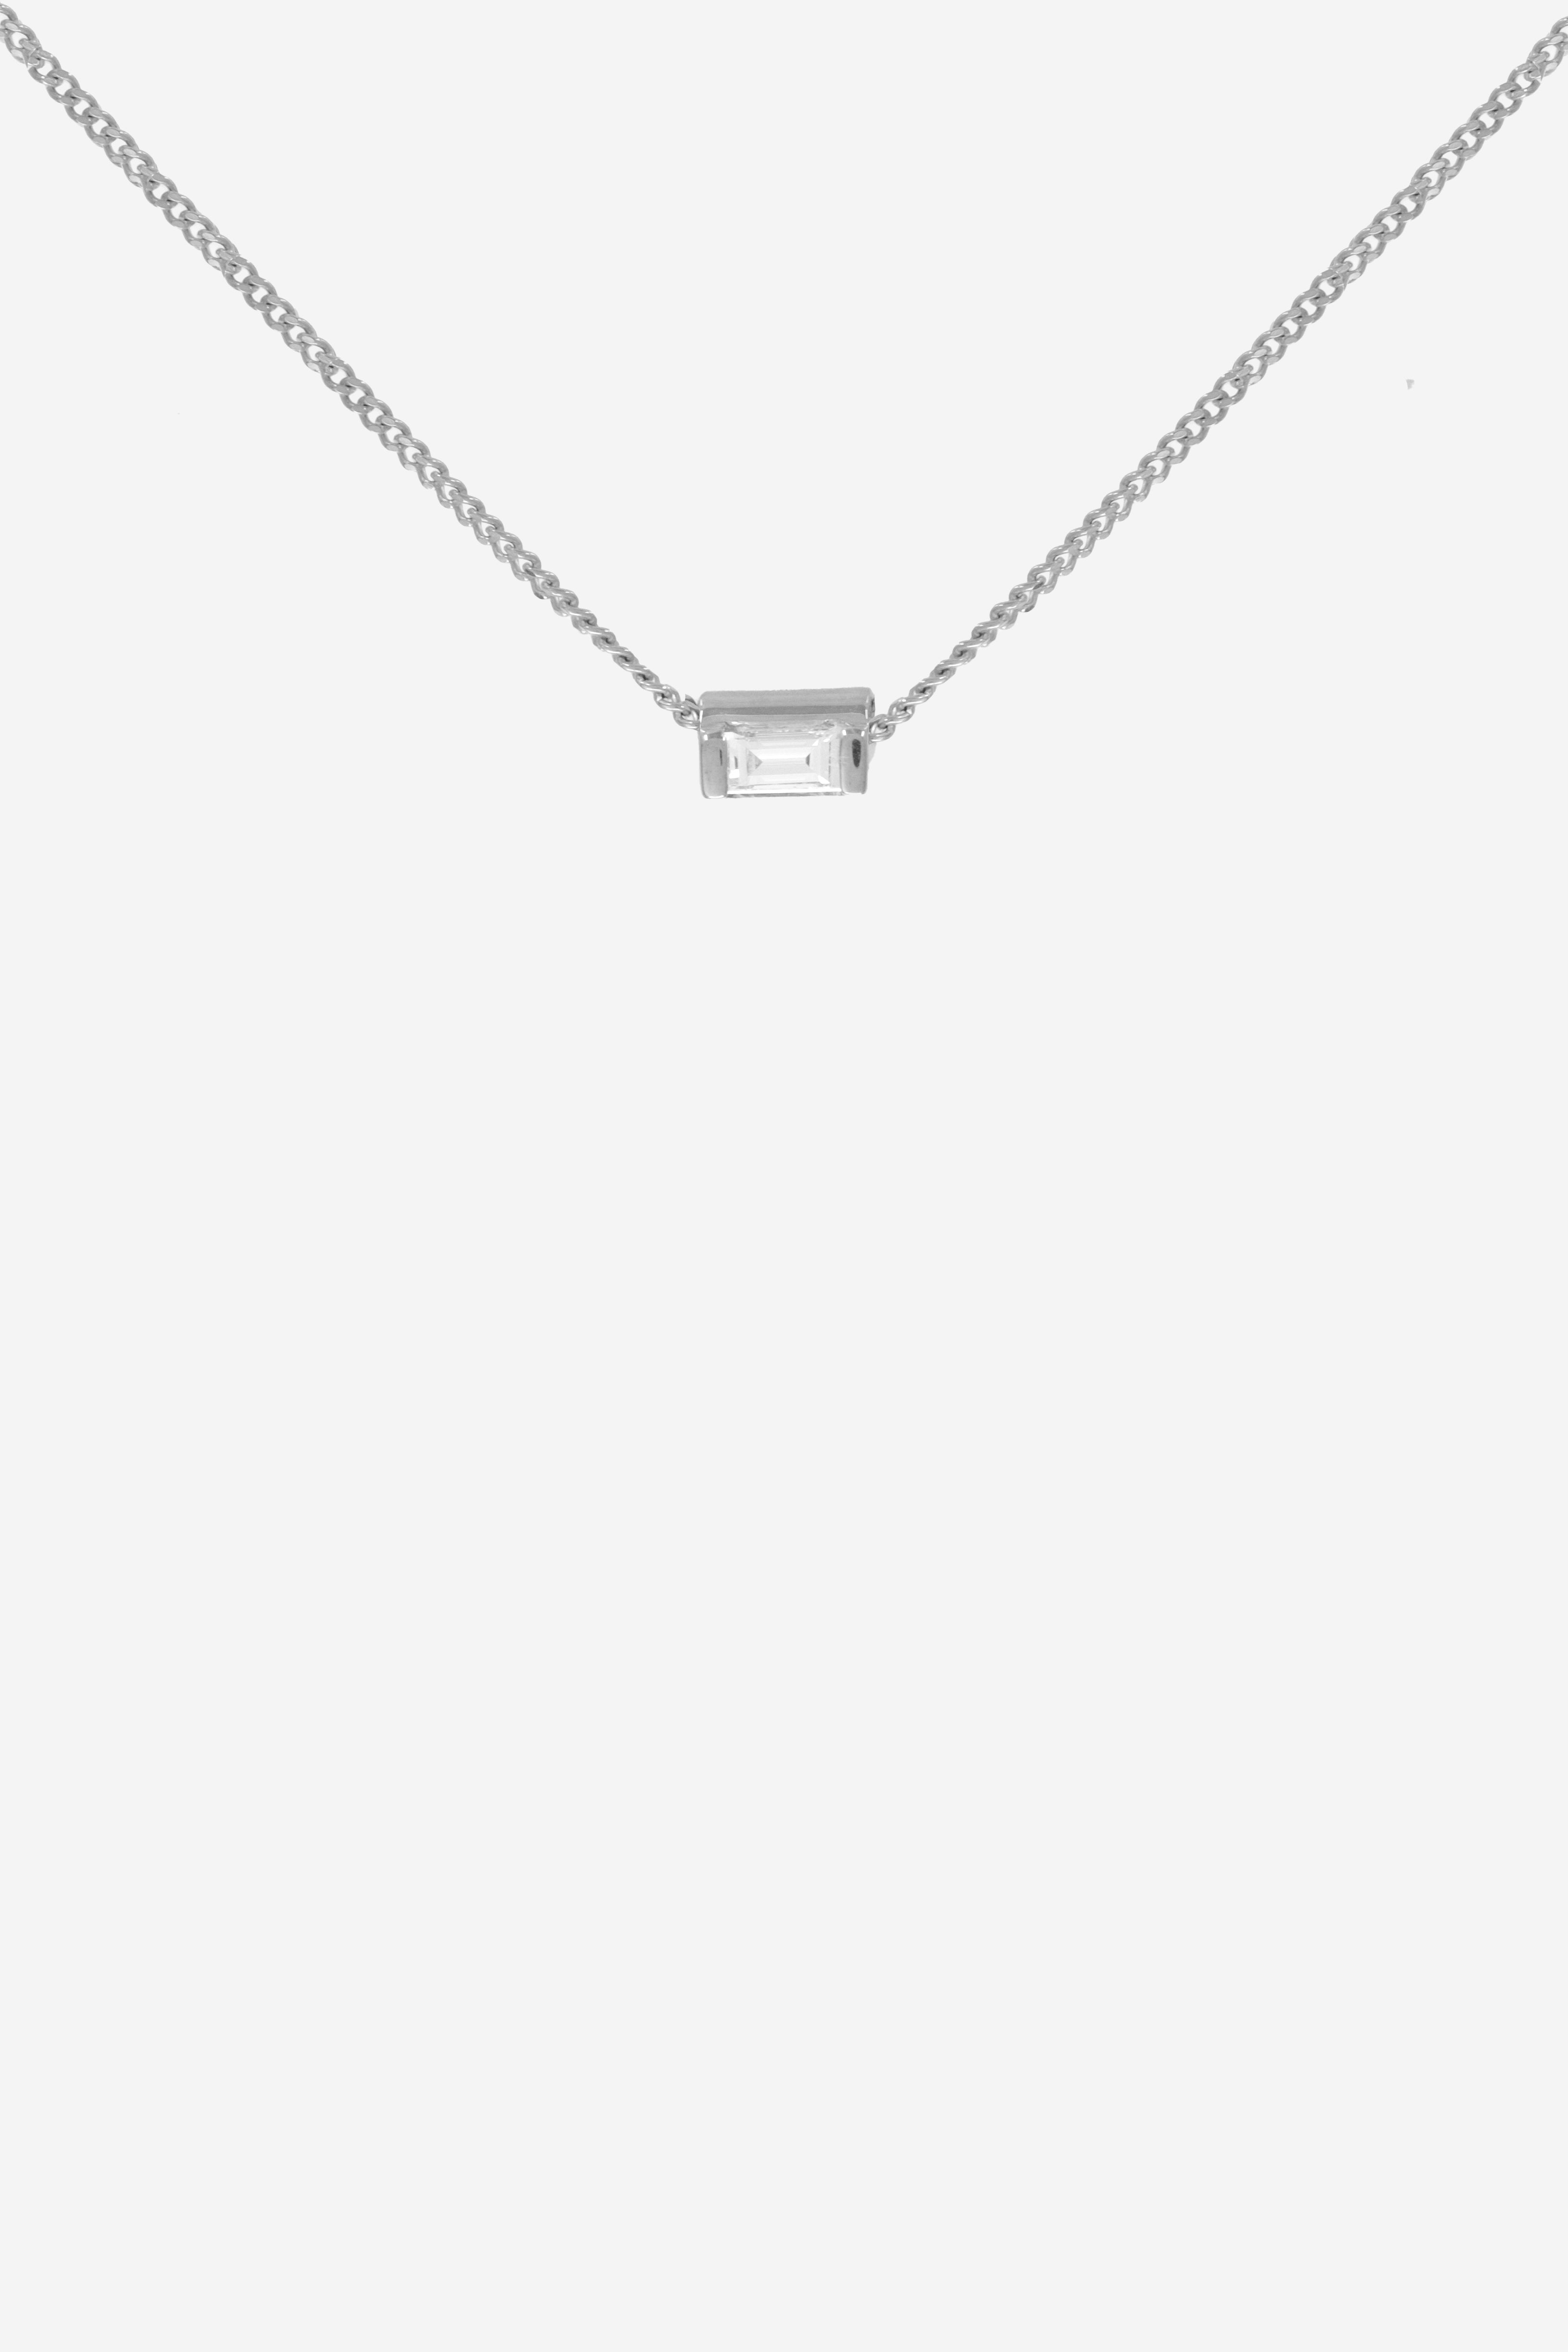 Baguette Diamond Necklace | 9K White Gold